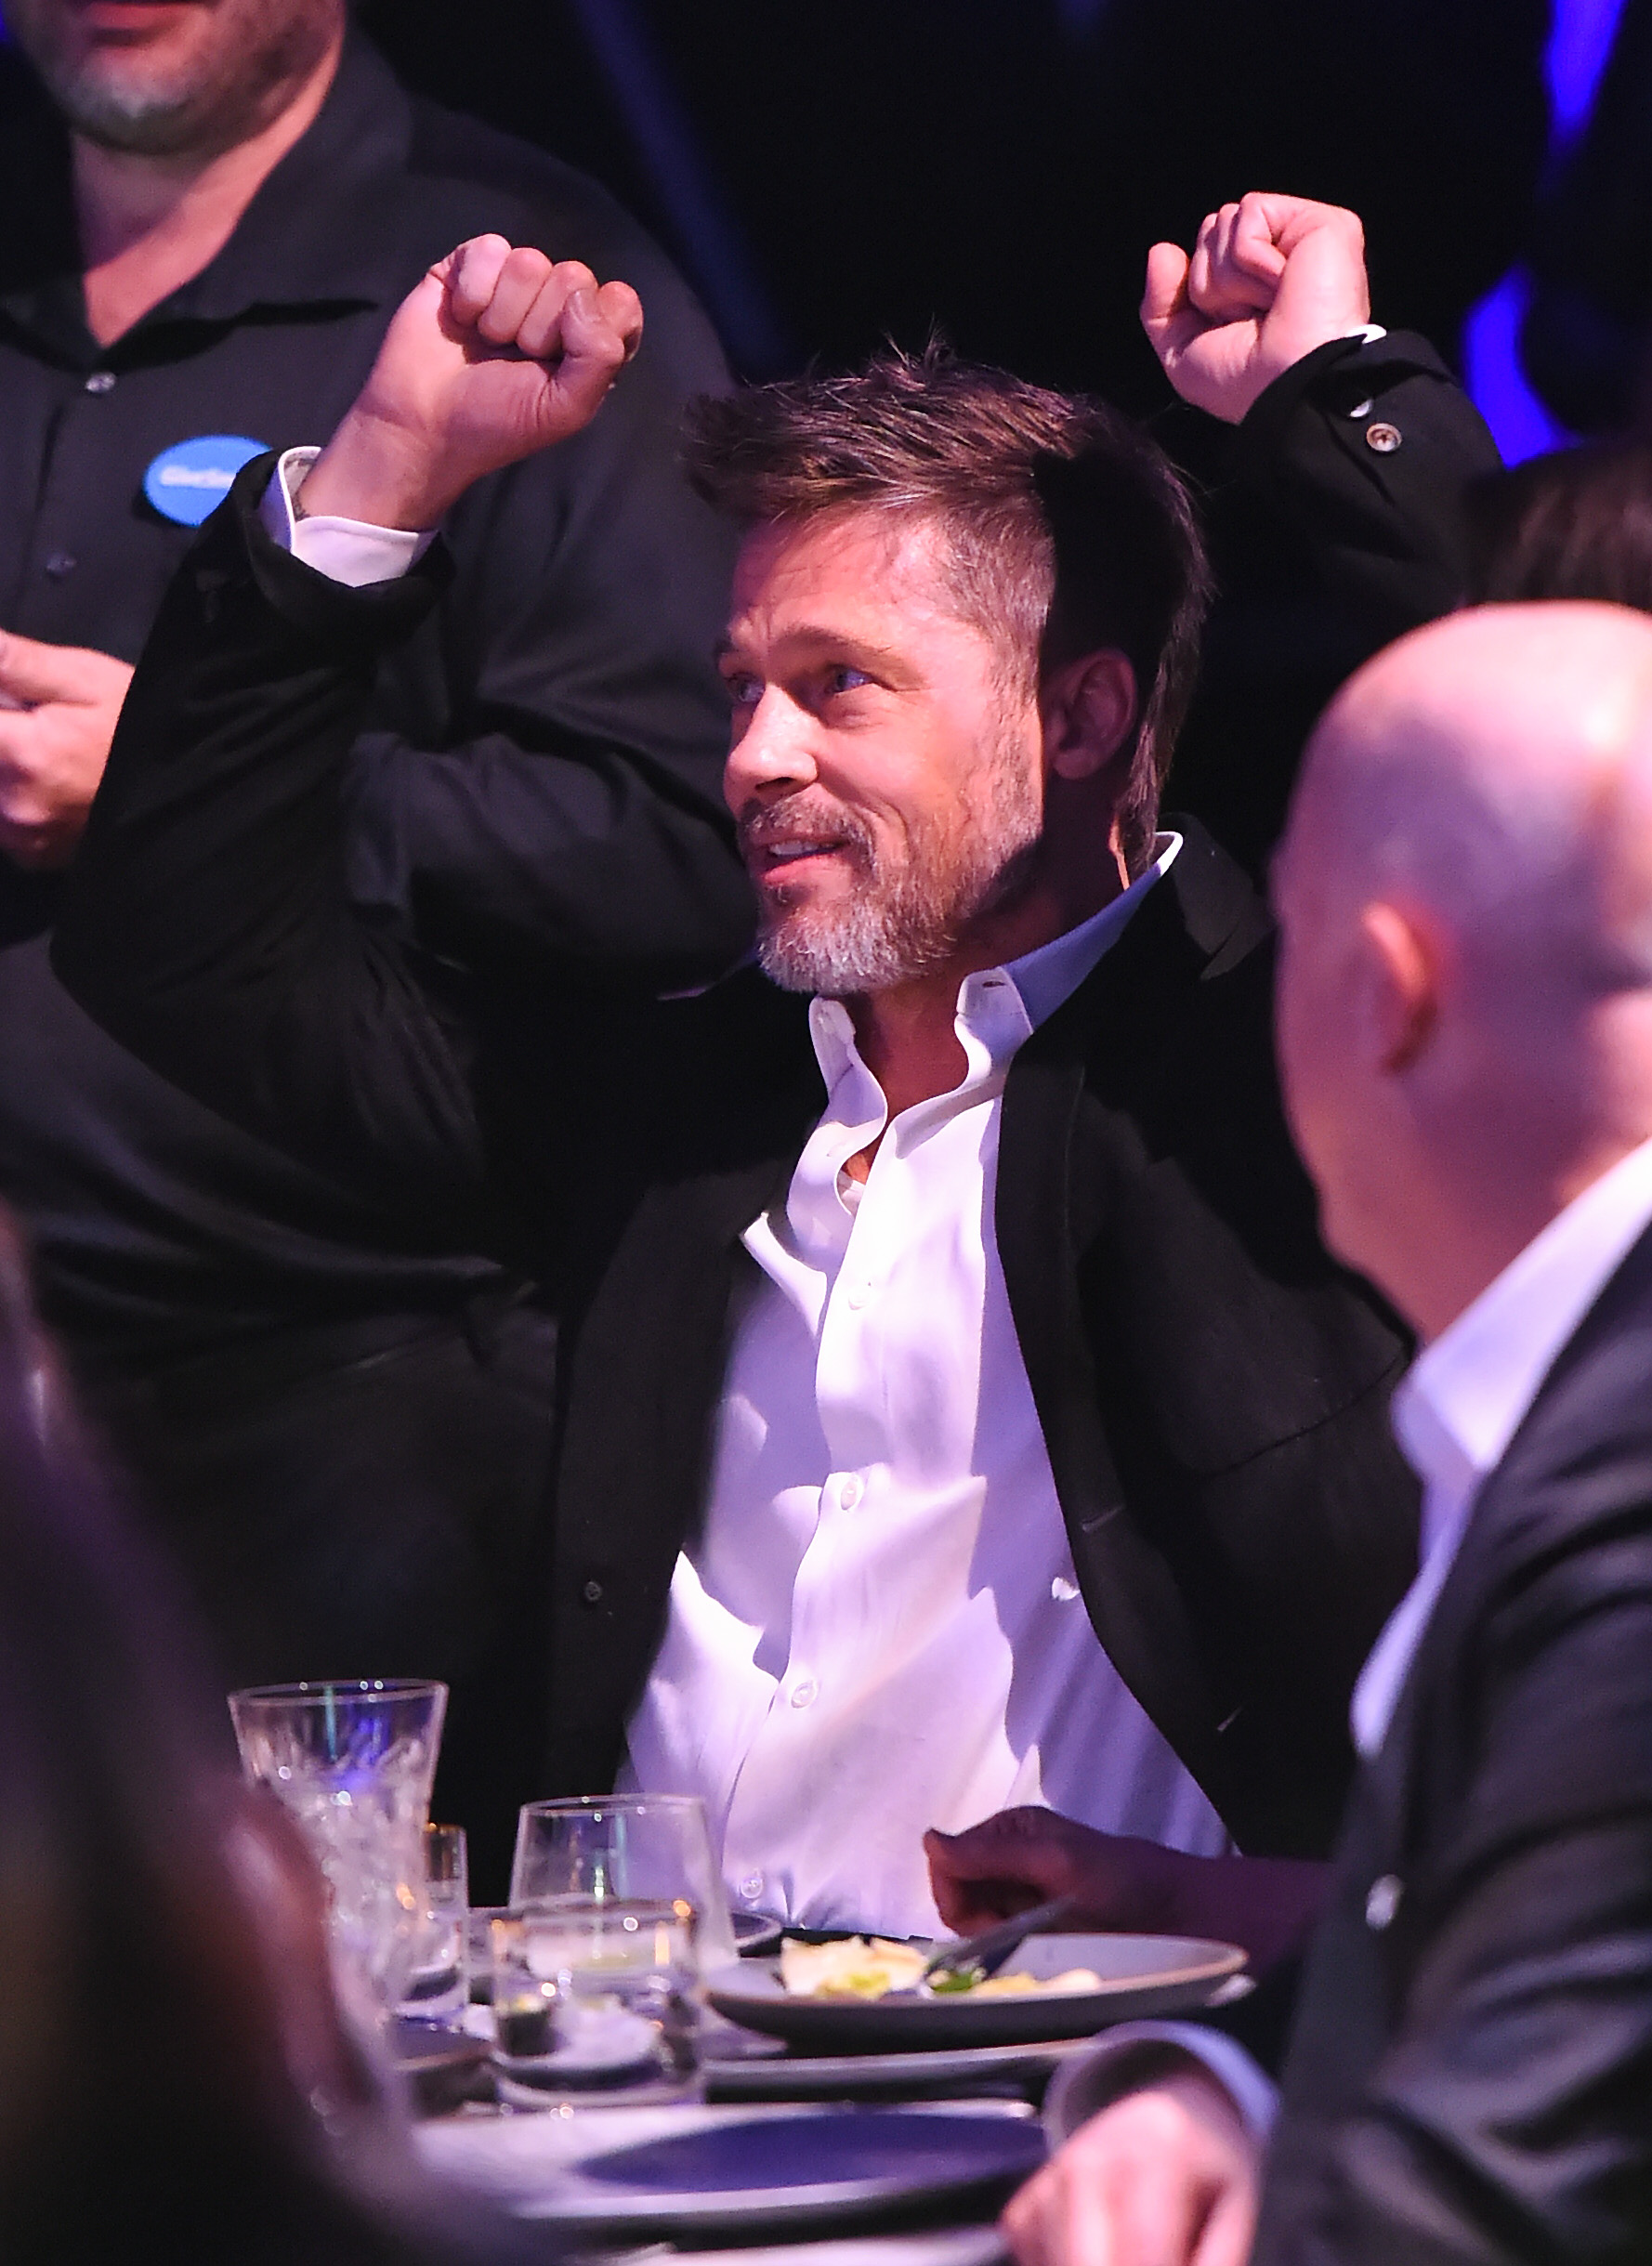 Brad Pitt Offered $120,000 To Watch 'Game Of Thrones' With Emilia Clarke